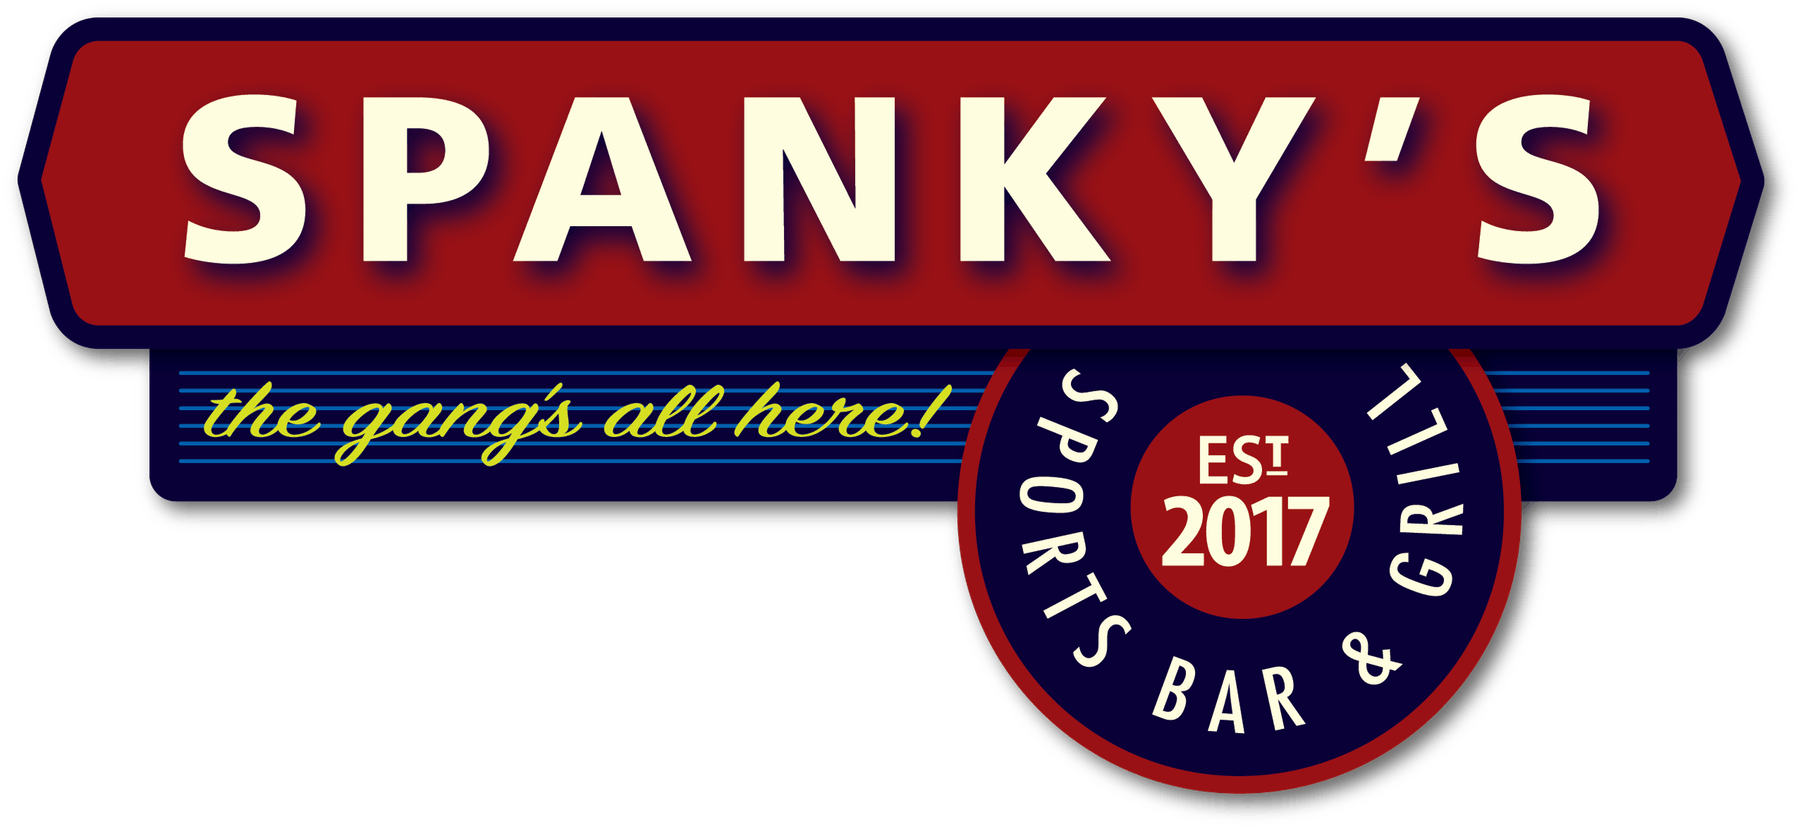 Spanky's Sports Bar and Grill Home